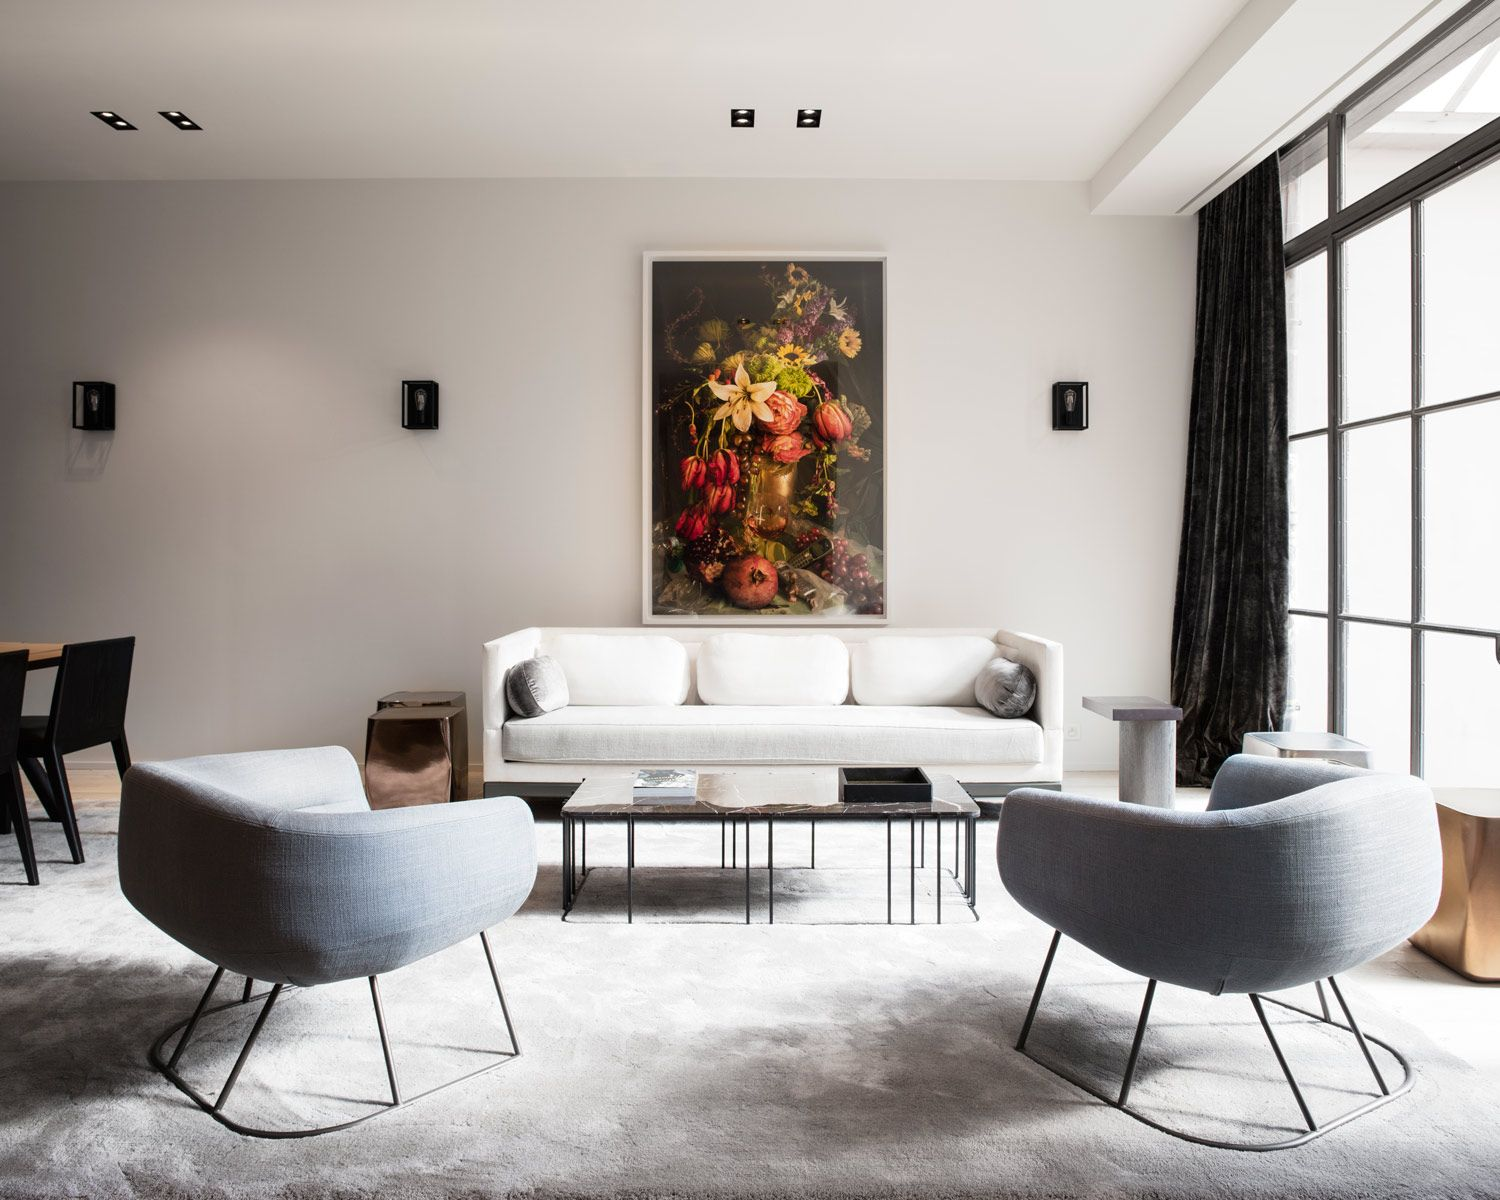 Uncategorized Kitchen Furniture Store belgian kitchen furniture and interior design company obumex launches a new showroom in brussels the flagship store is a